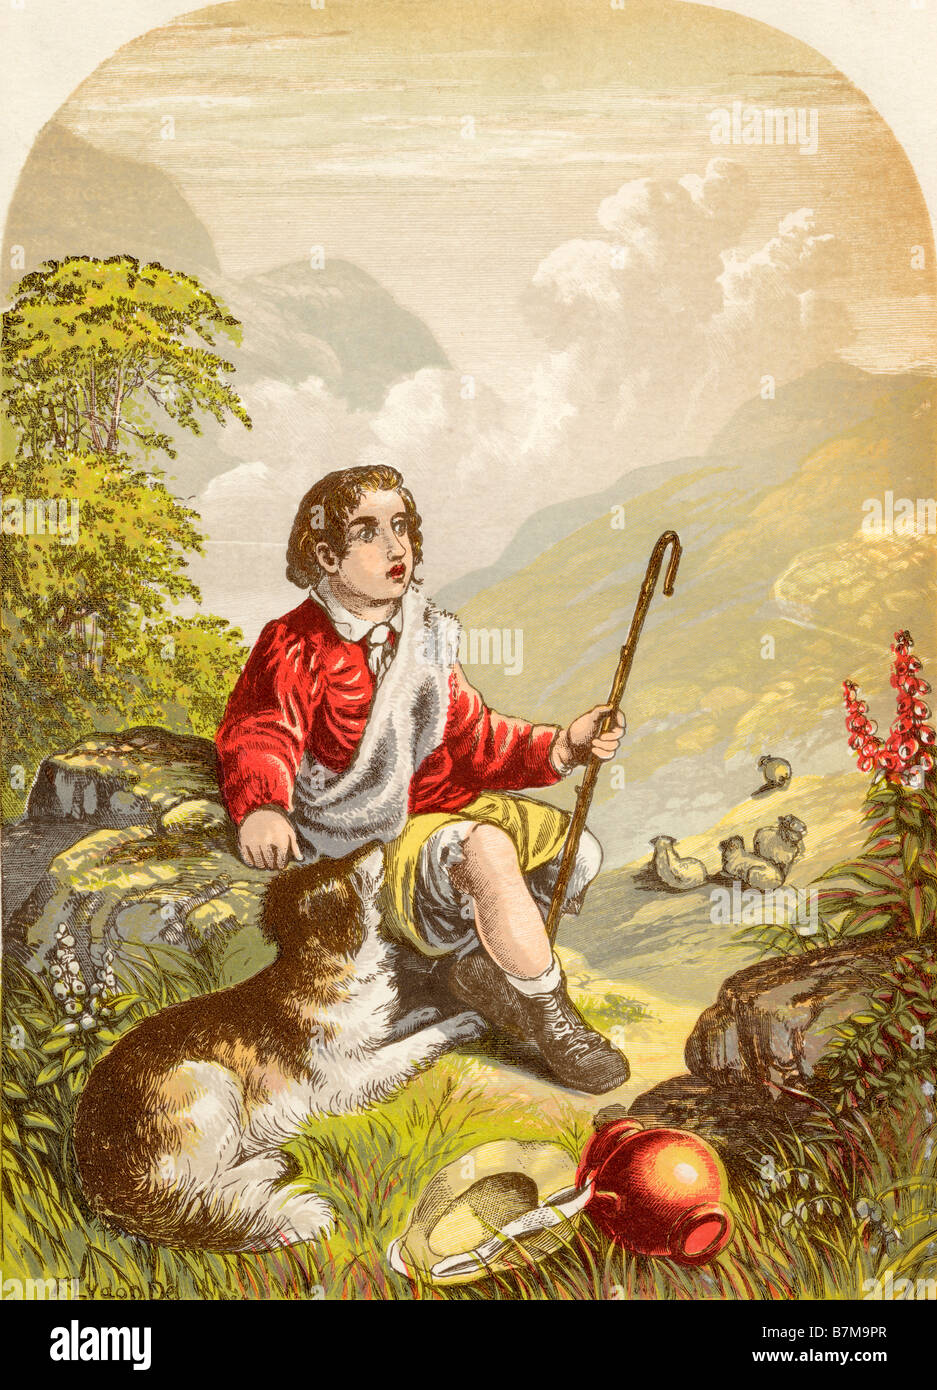 The Shepherd Boy in the Valley of Humiliation From the book The Pilgrims Progress - Stock Image